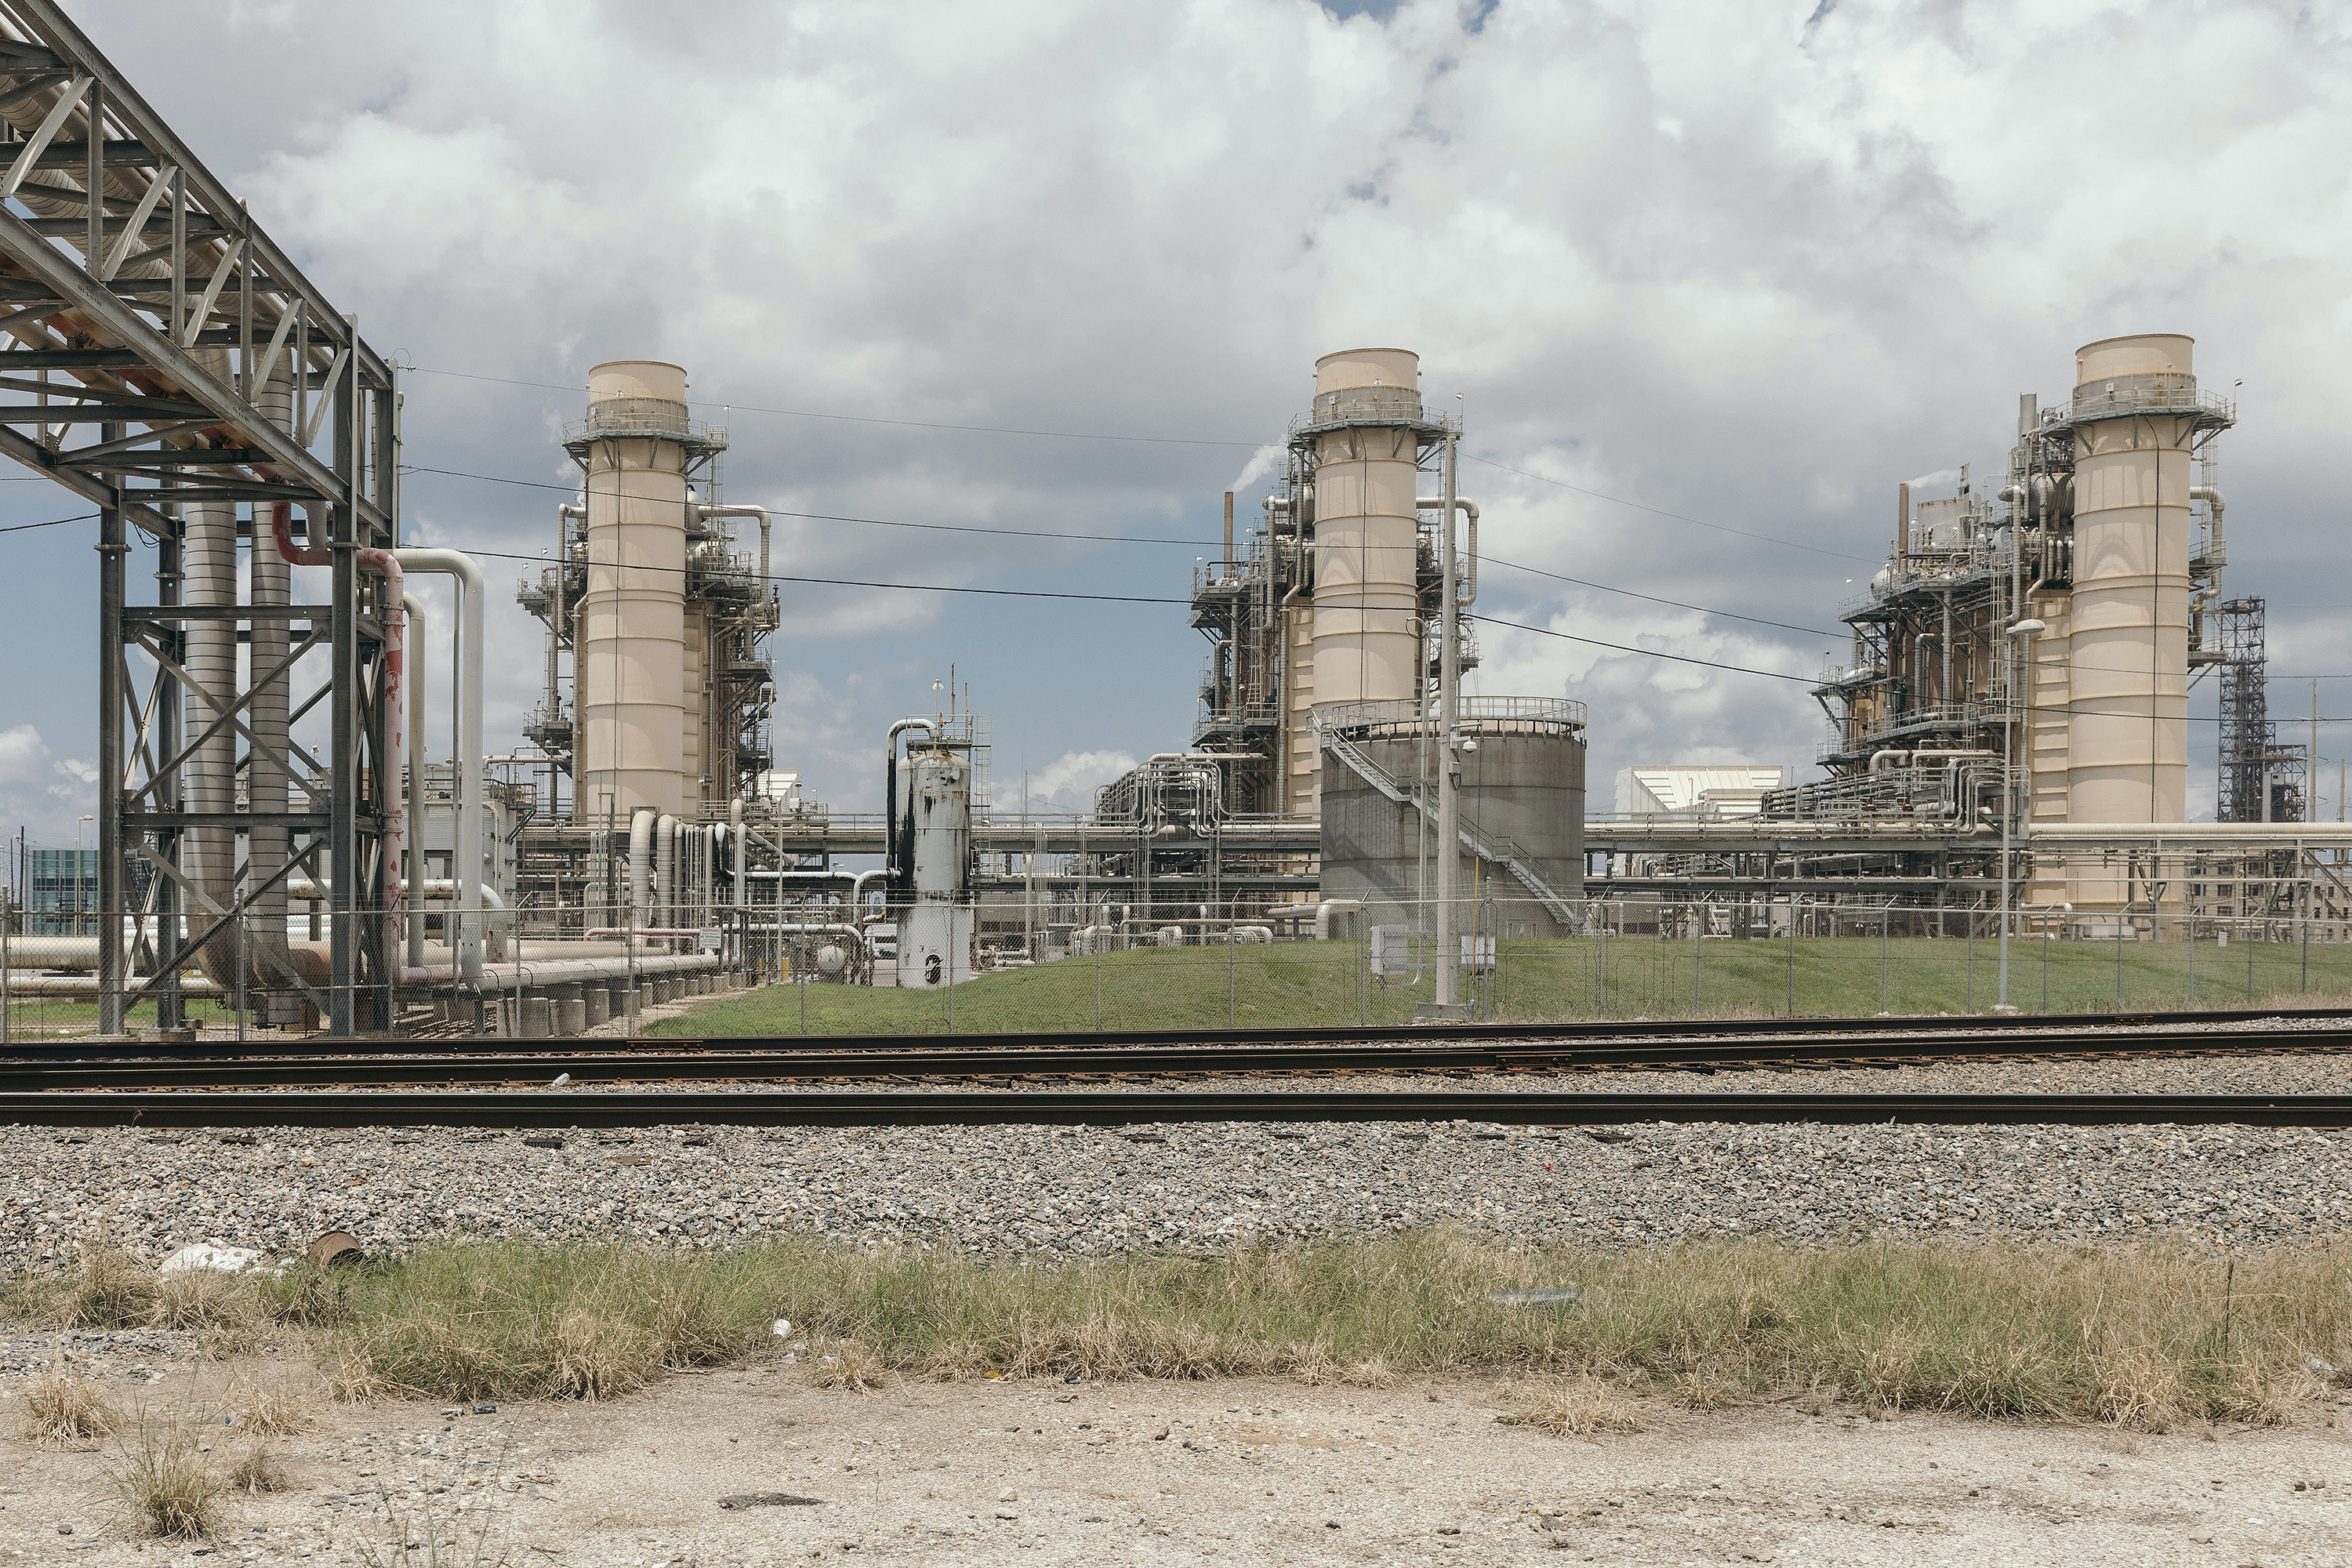 Exxon Mobil Is Still Pumping Toxins Into Black Community in Texas ...